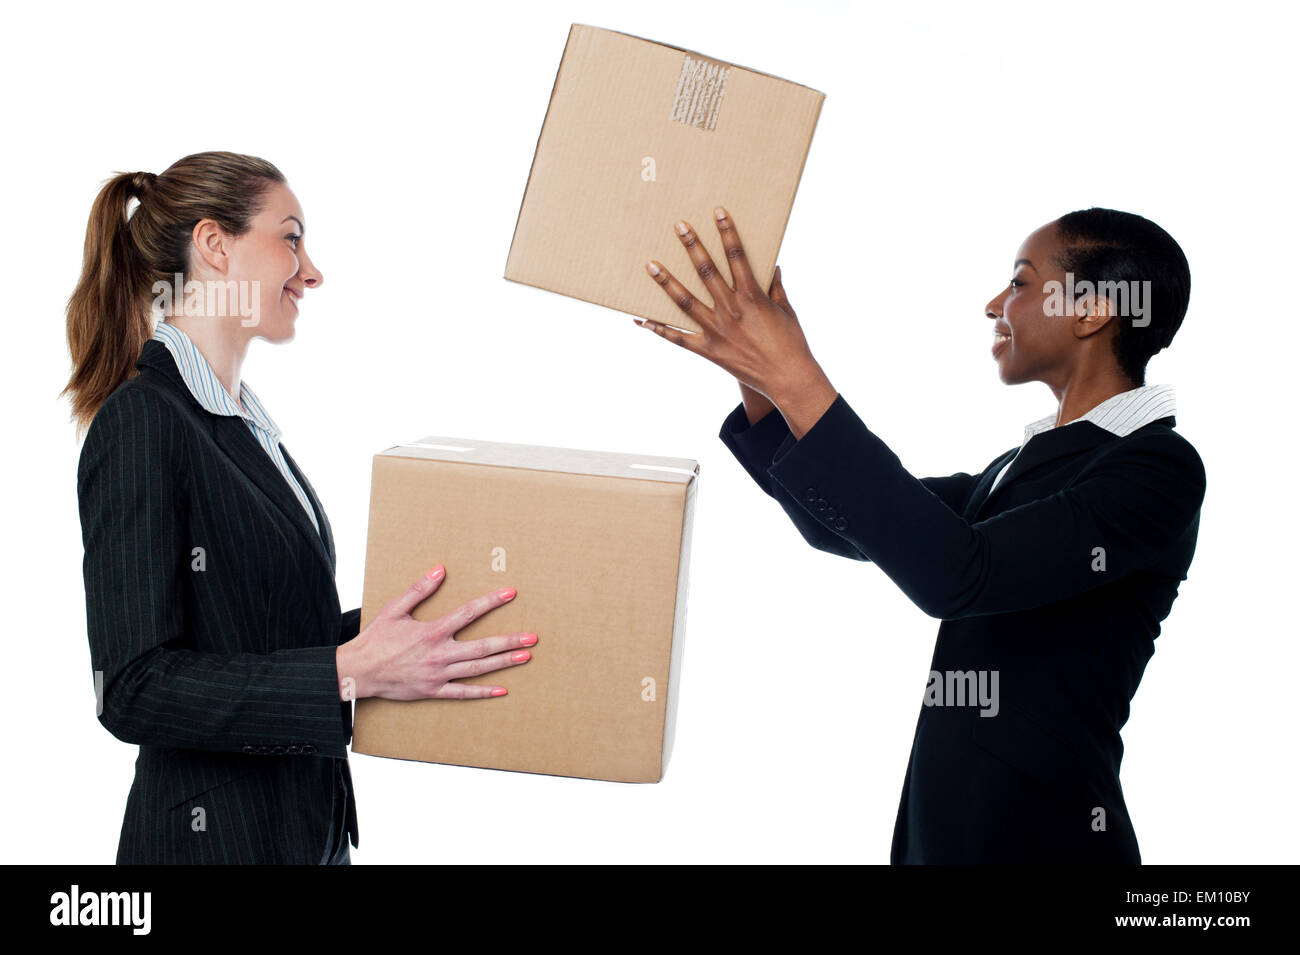 Its time to move to the new office - Stock Image